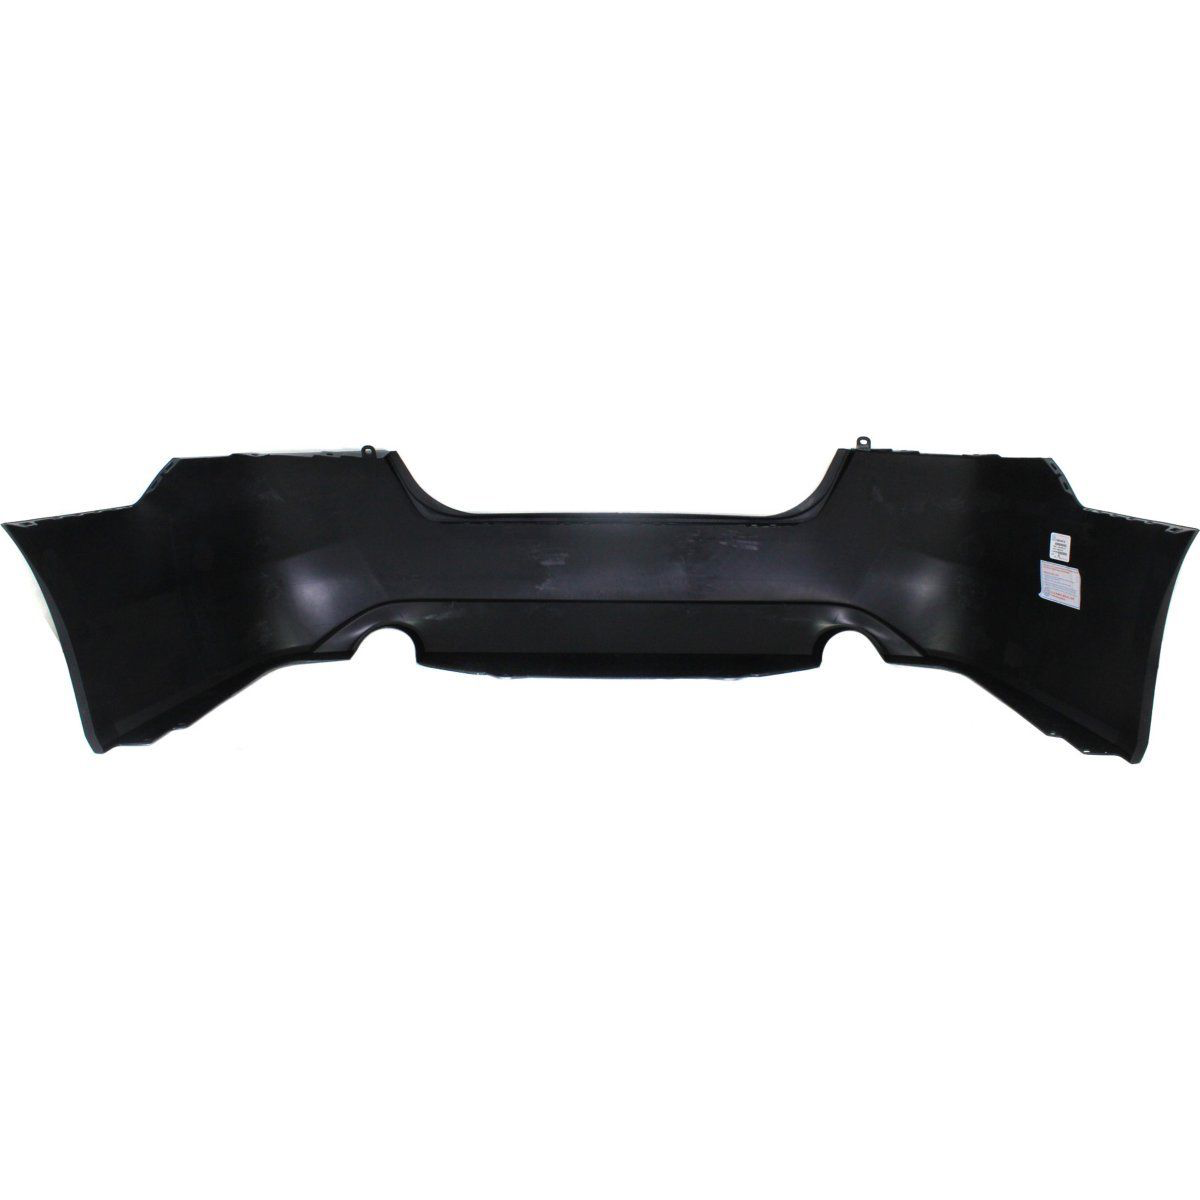 2013-2015 NISSAN ALTIMA Sedan Rear Bumper Cover Painted to Match